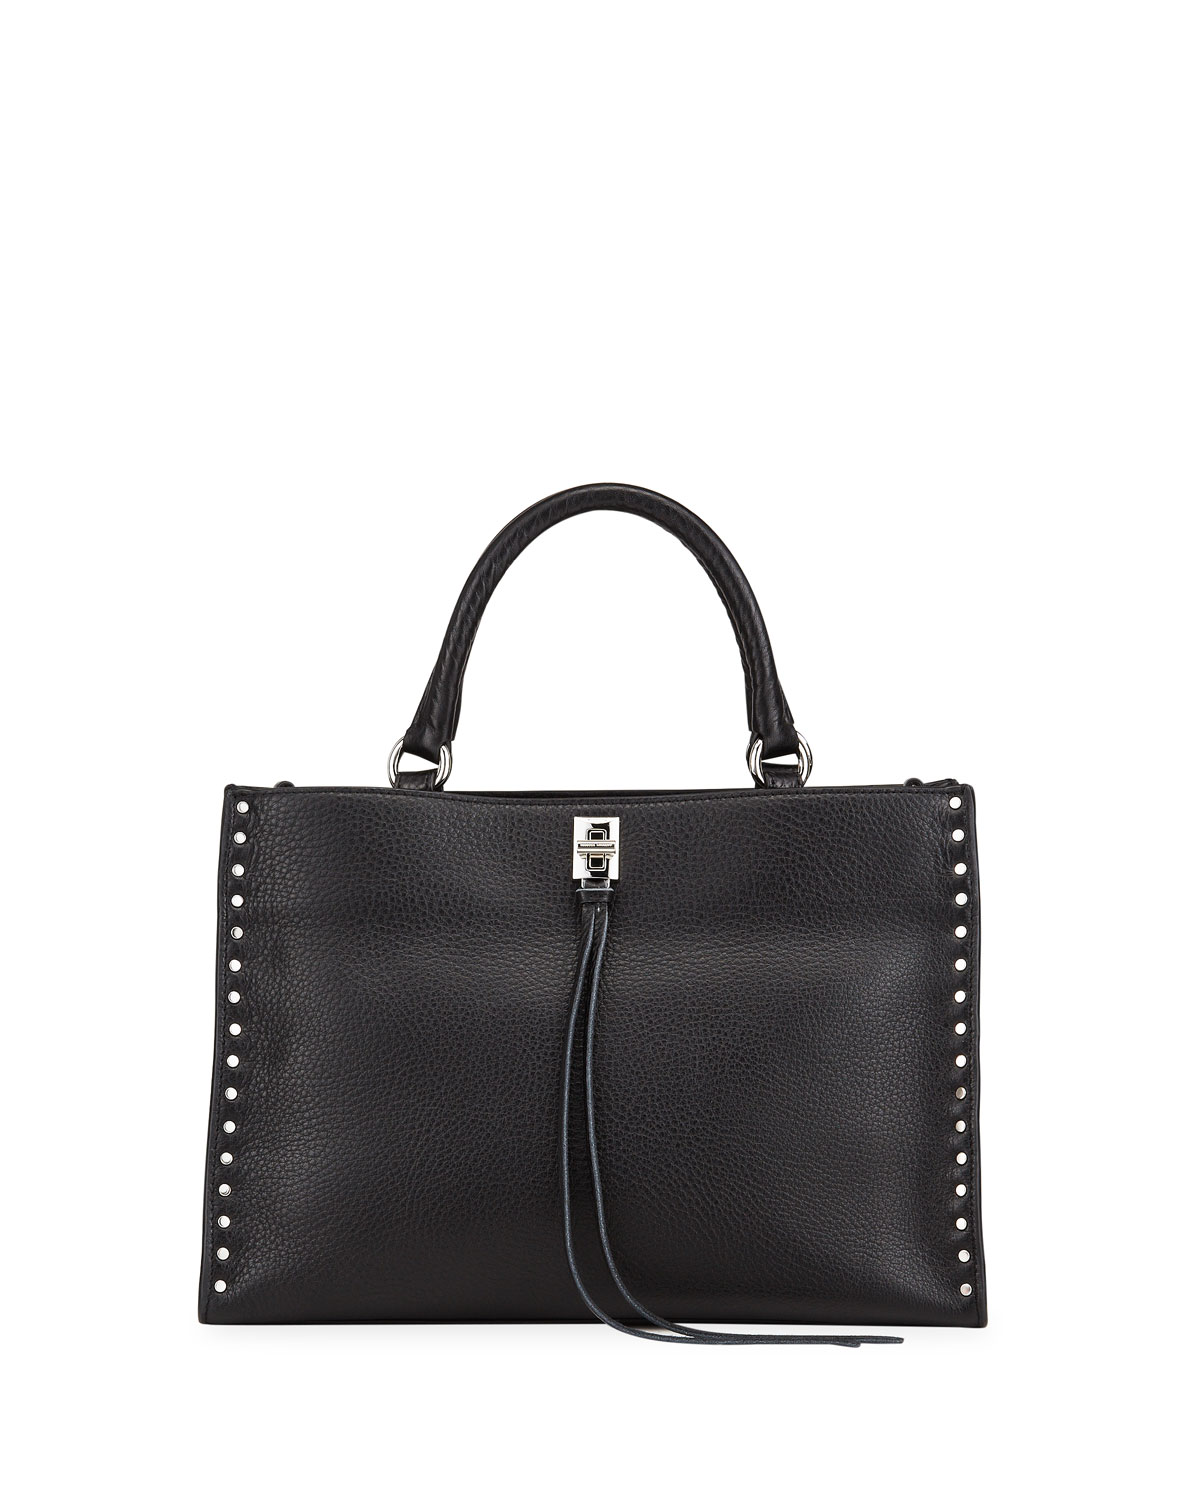 Rebecca Minkoff DARREN STUDDED PEBBLED LEATHER SATCHEL TOTE BAG